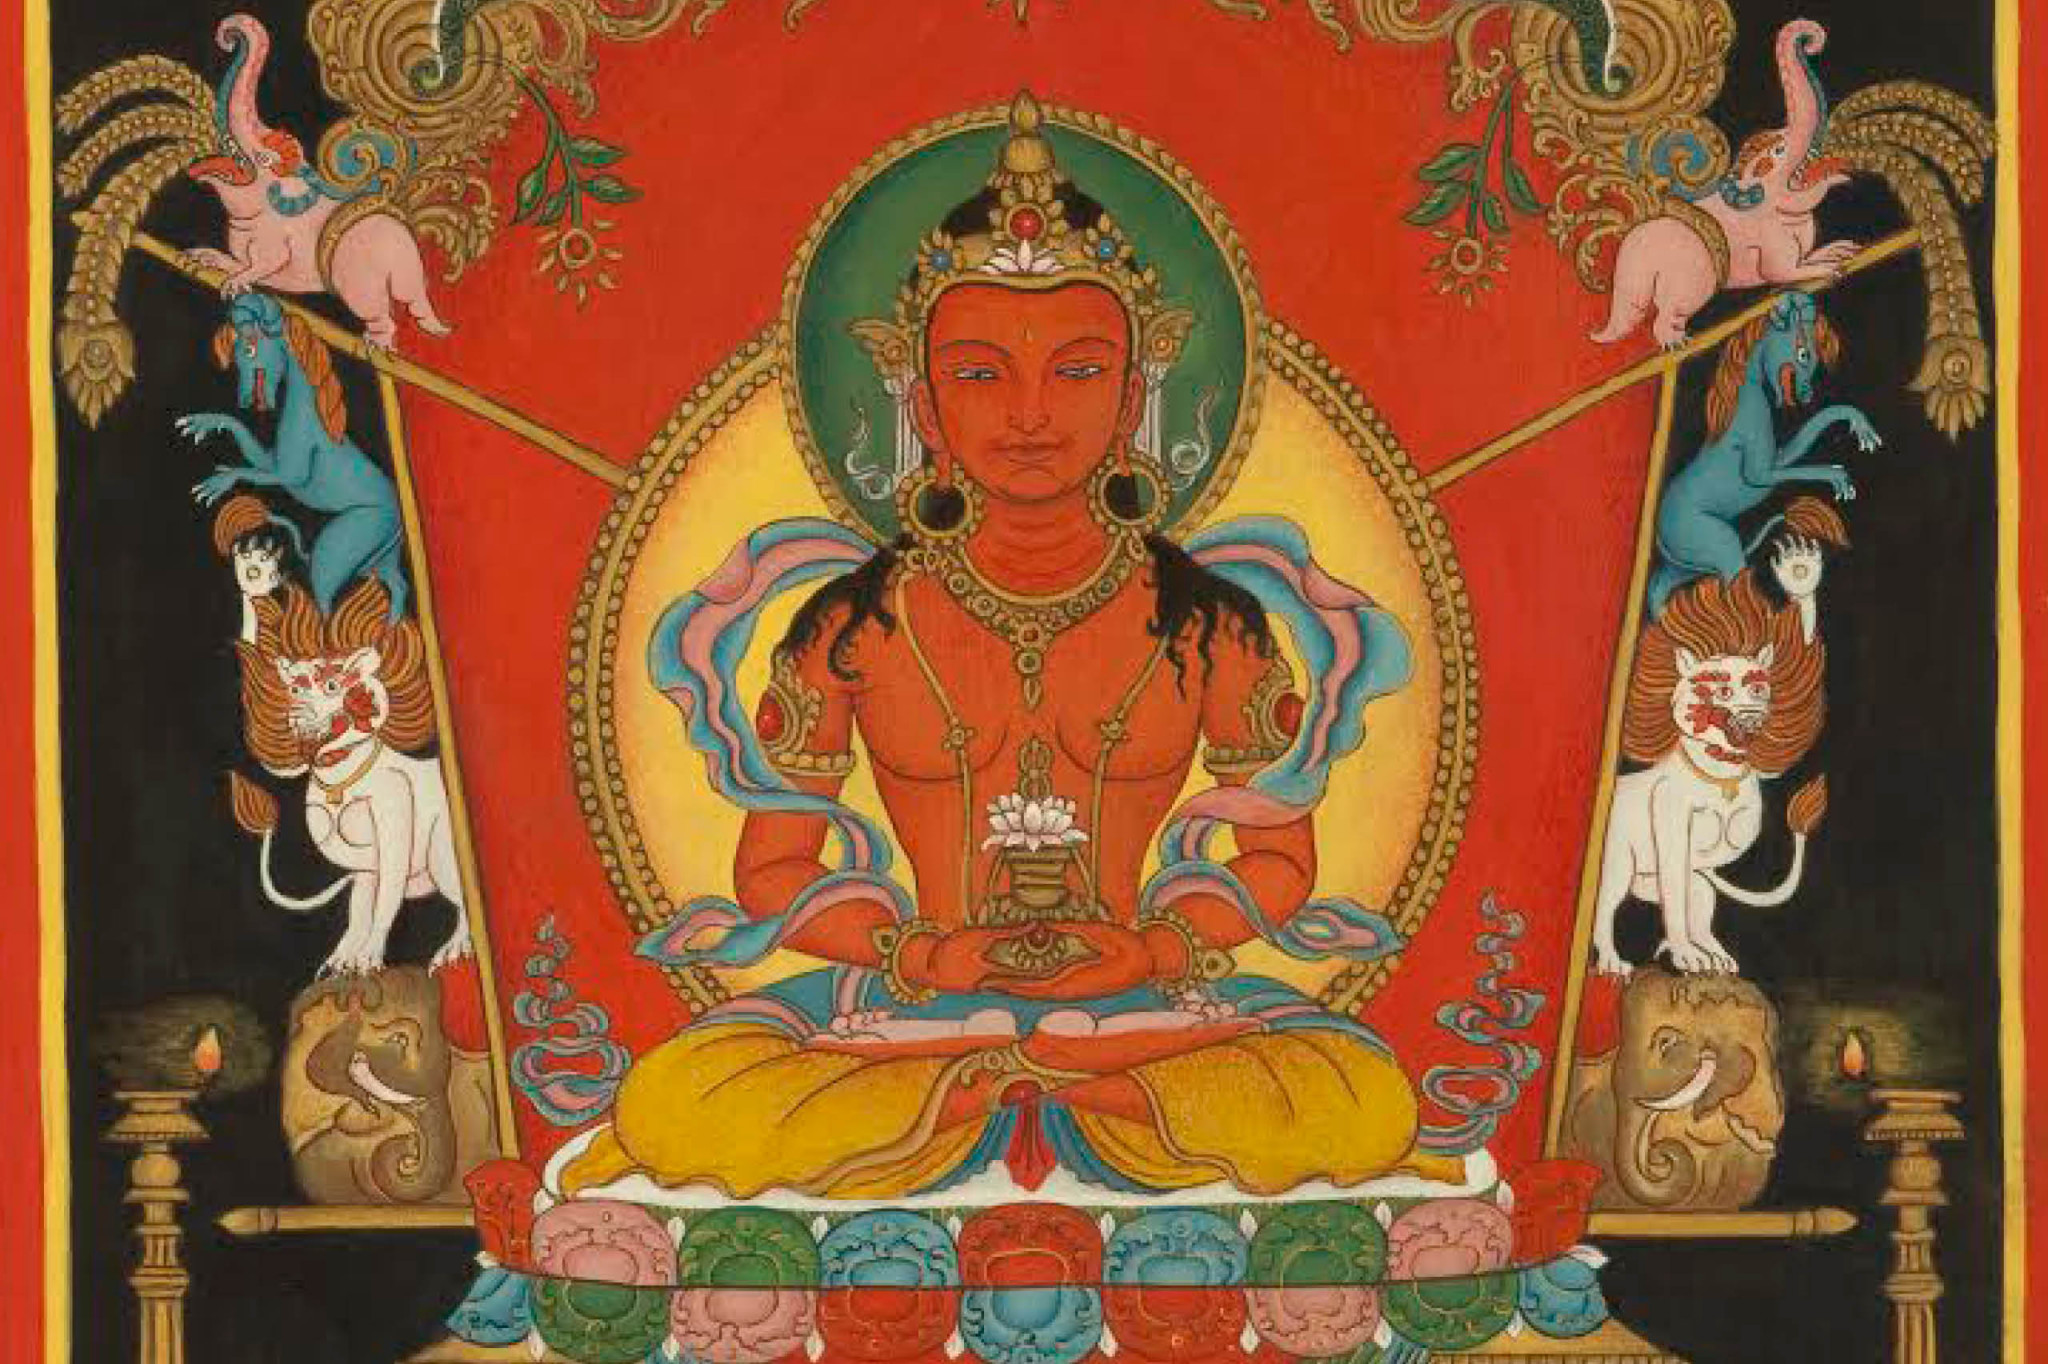 Image of Amitayus Buddha of long life